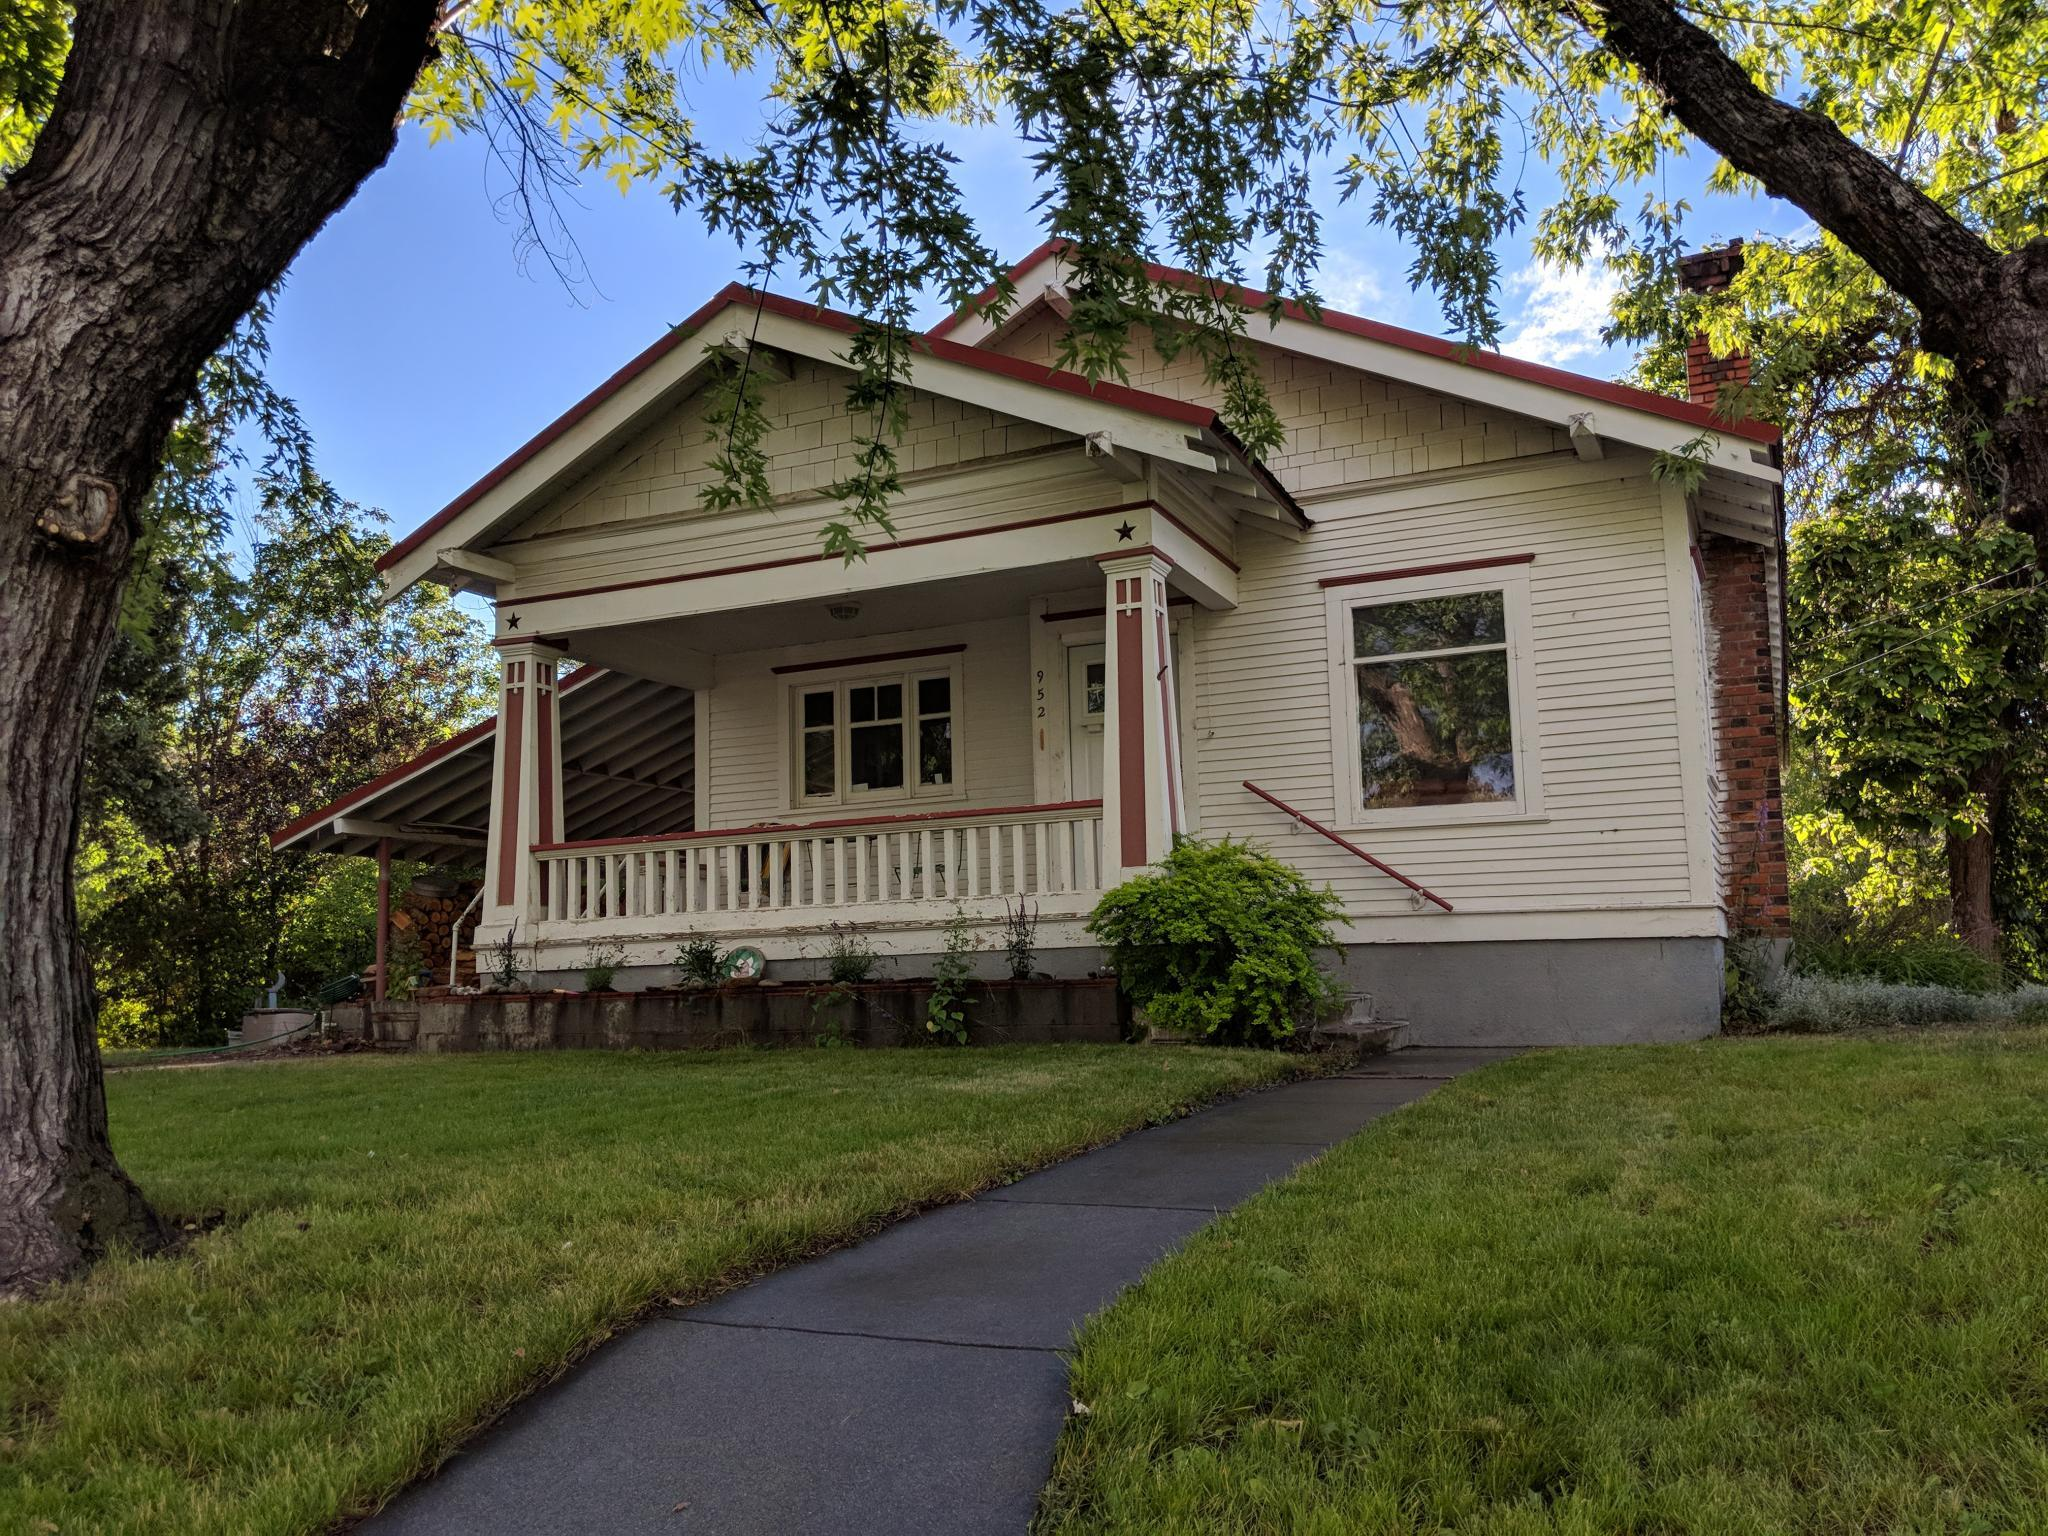 952 Rogers St Okanogan Wa 98840 3 Bed 1 Bath Single Family Home